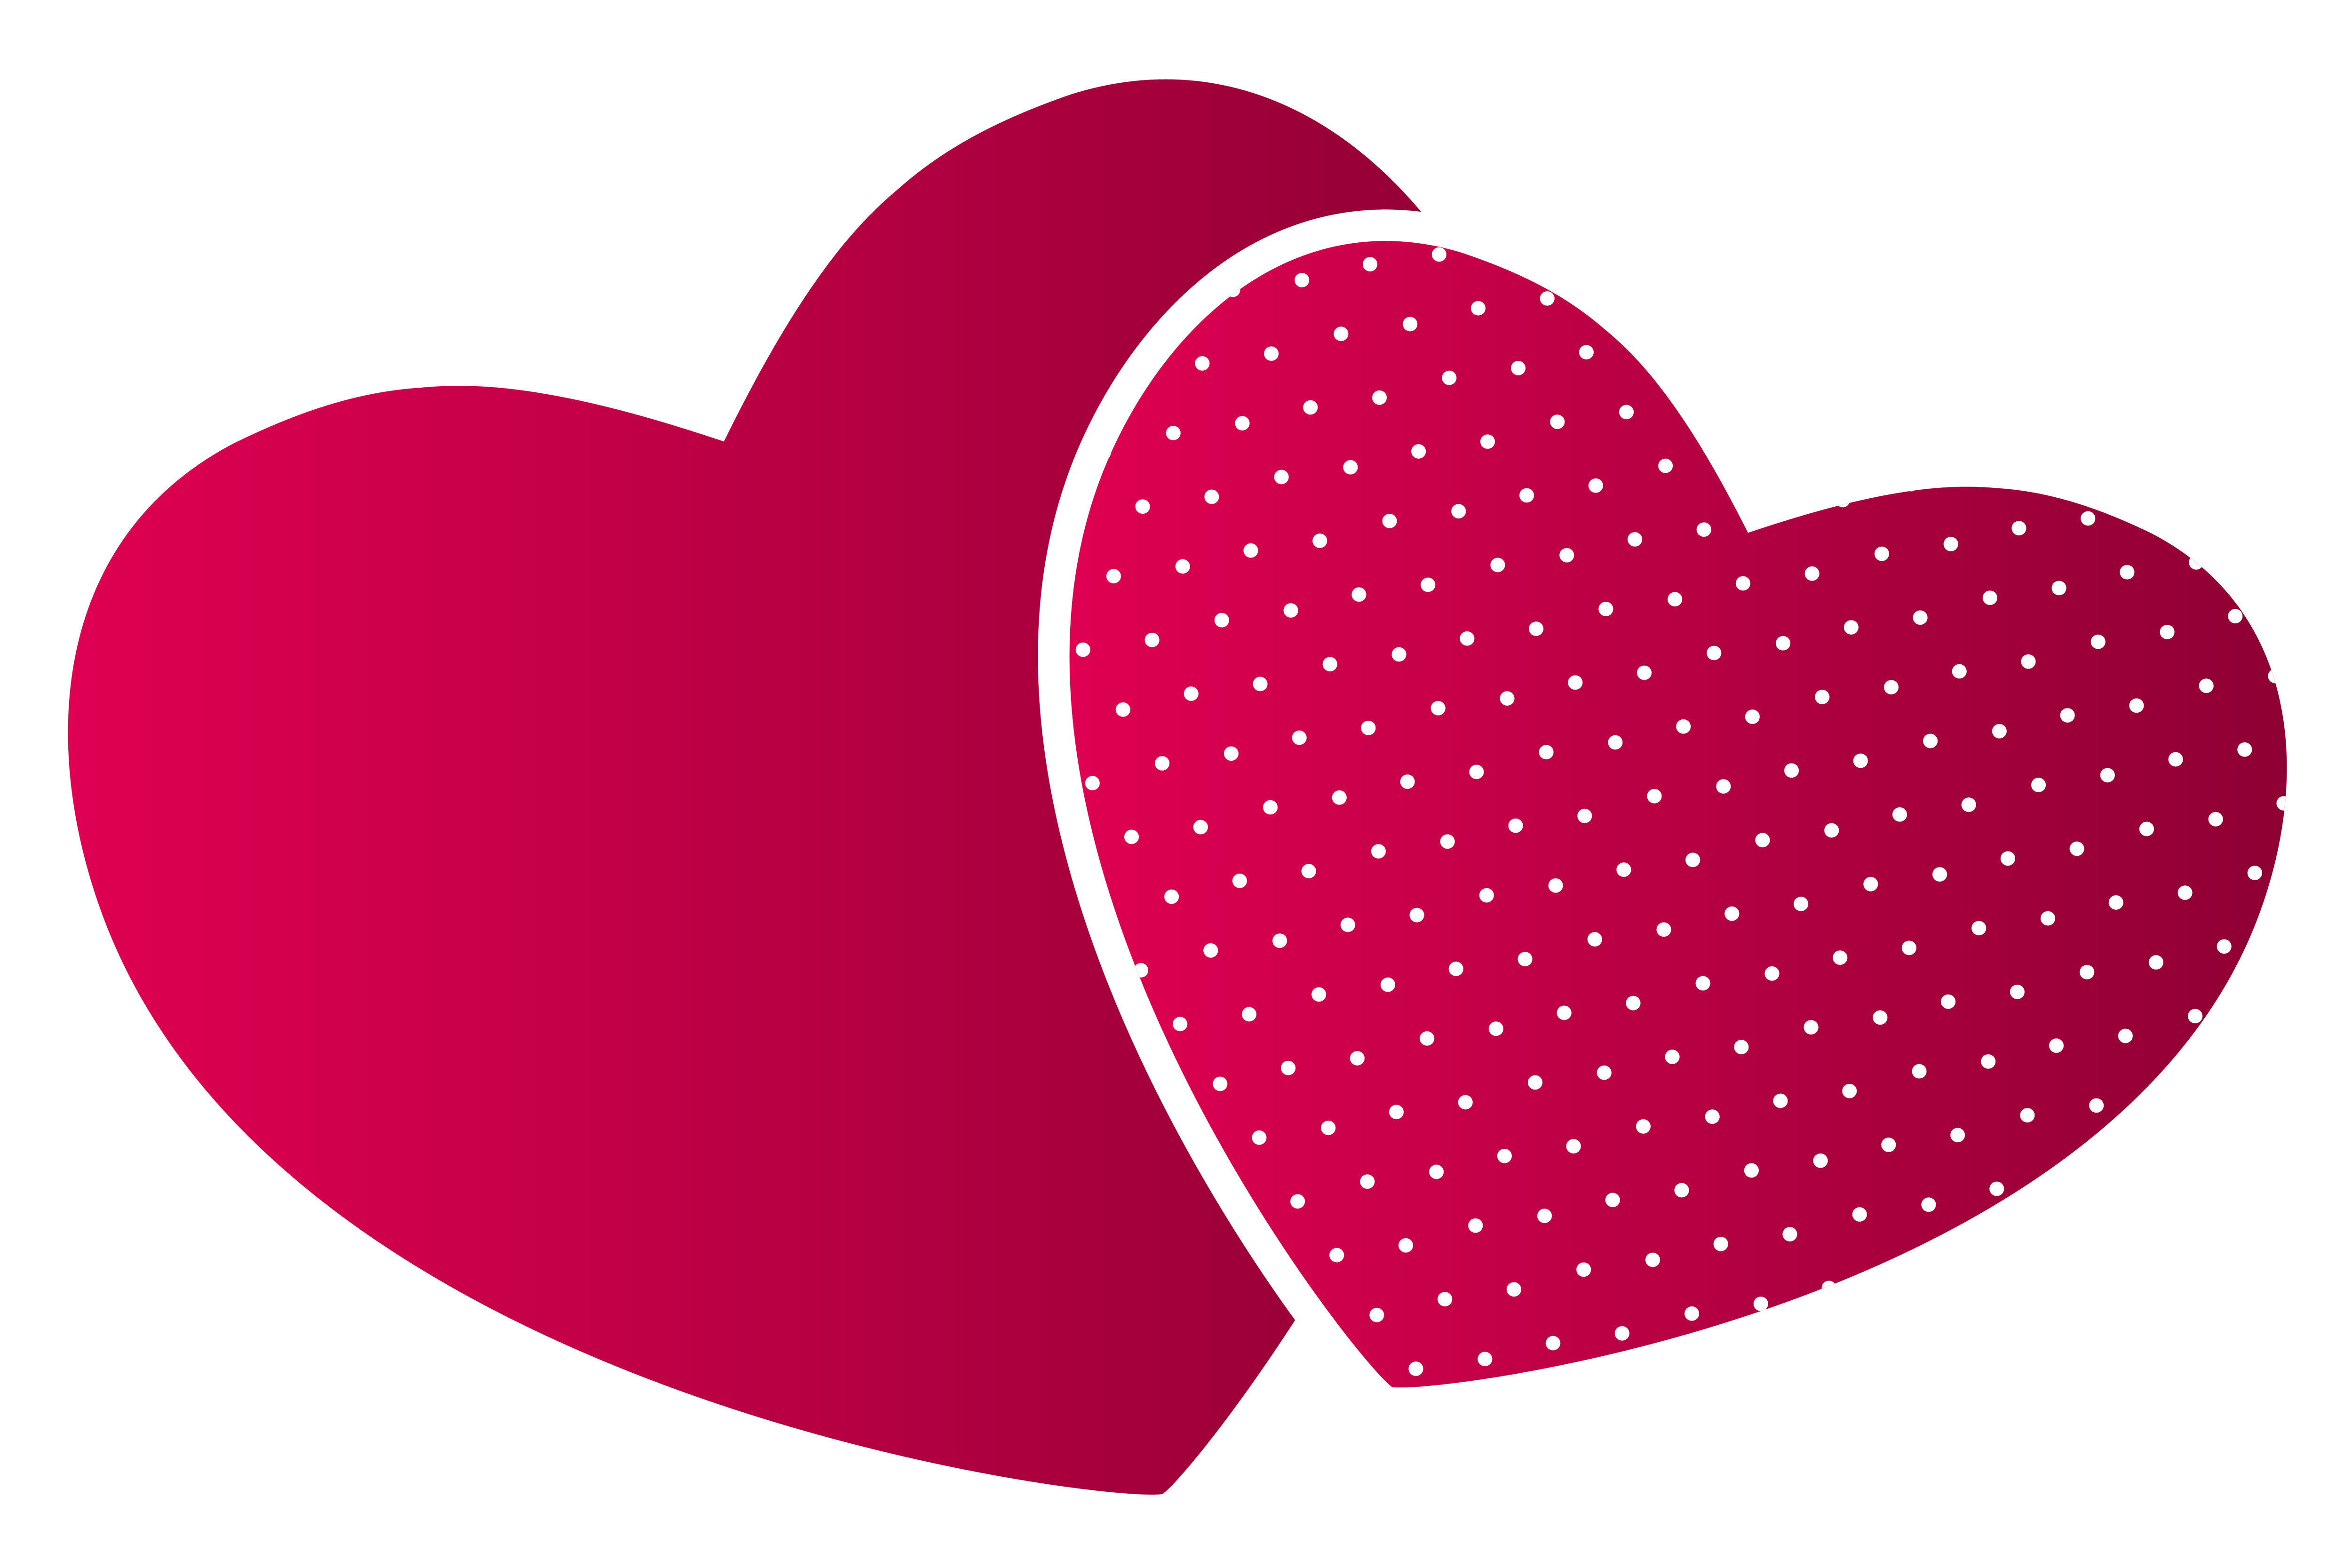 Heart art png. Double hearts clipart best